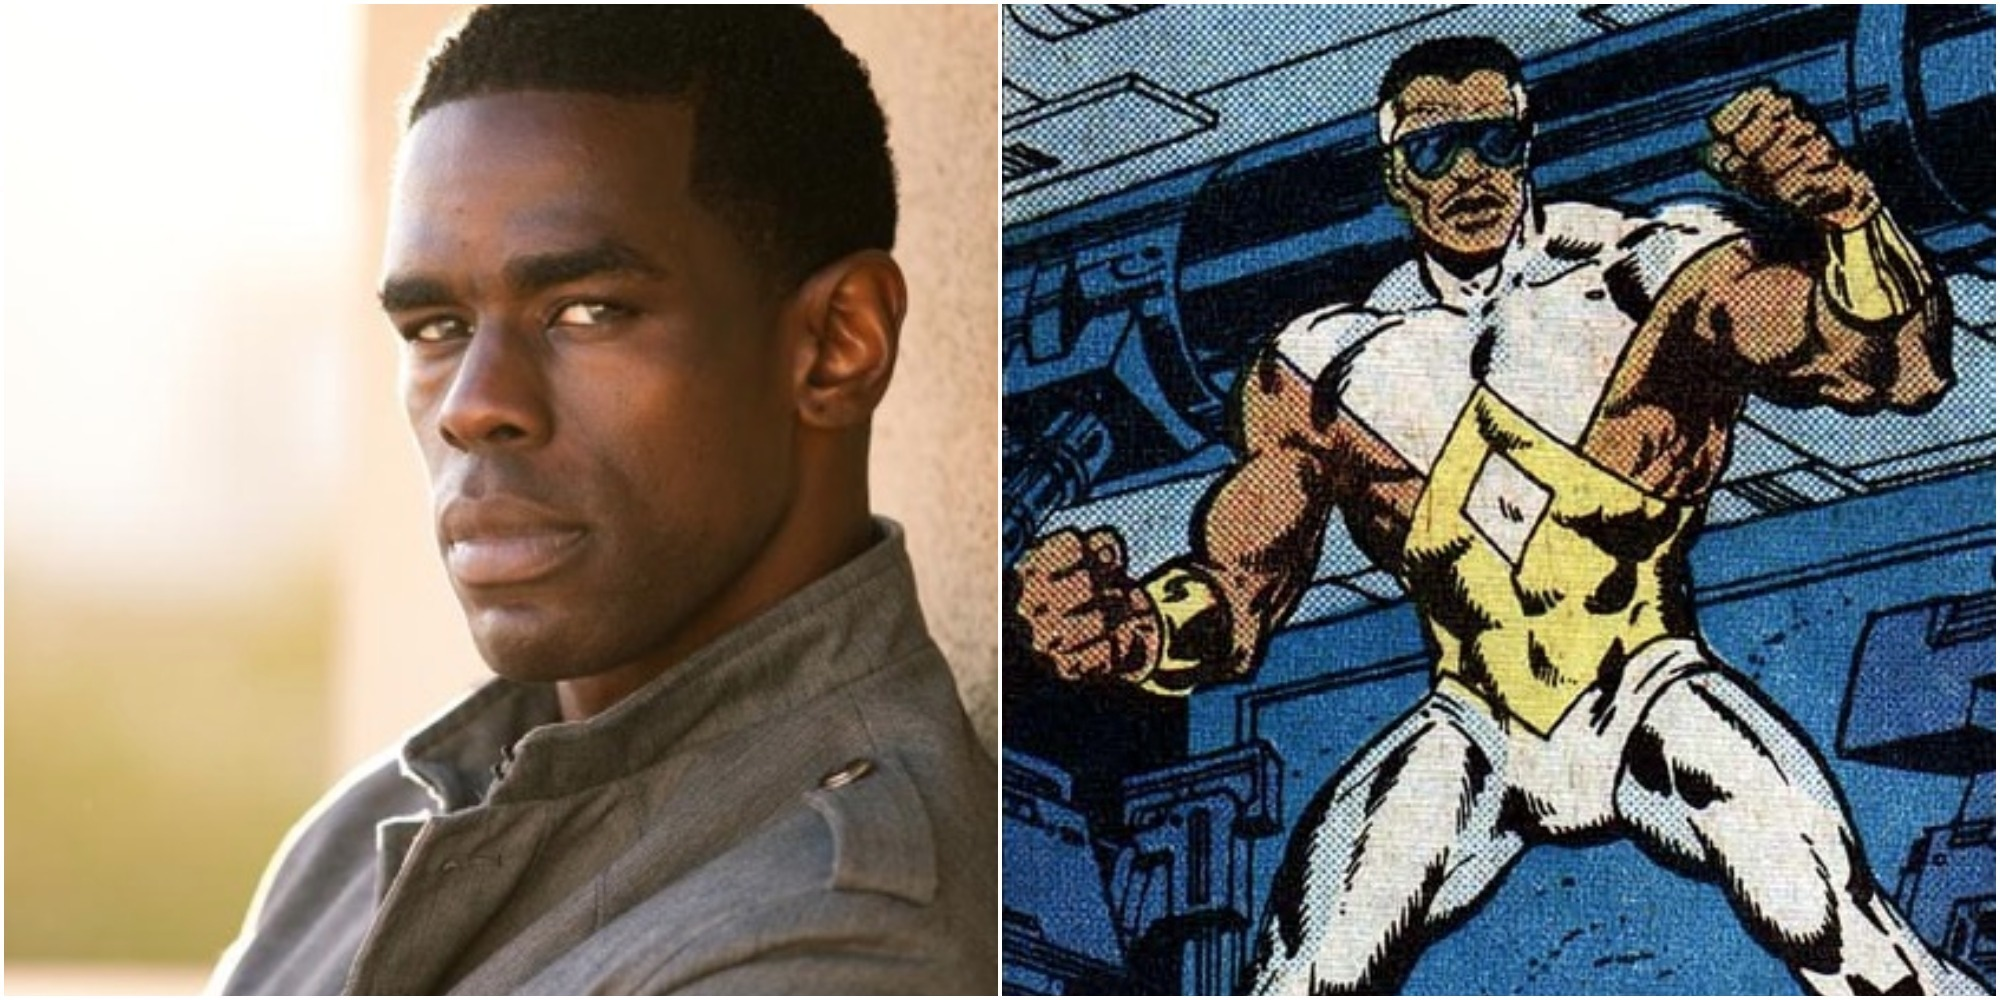 Luke Cage casts two comic book villains in season 2